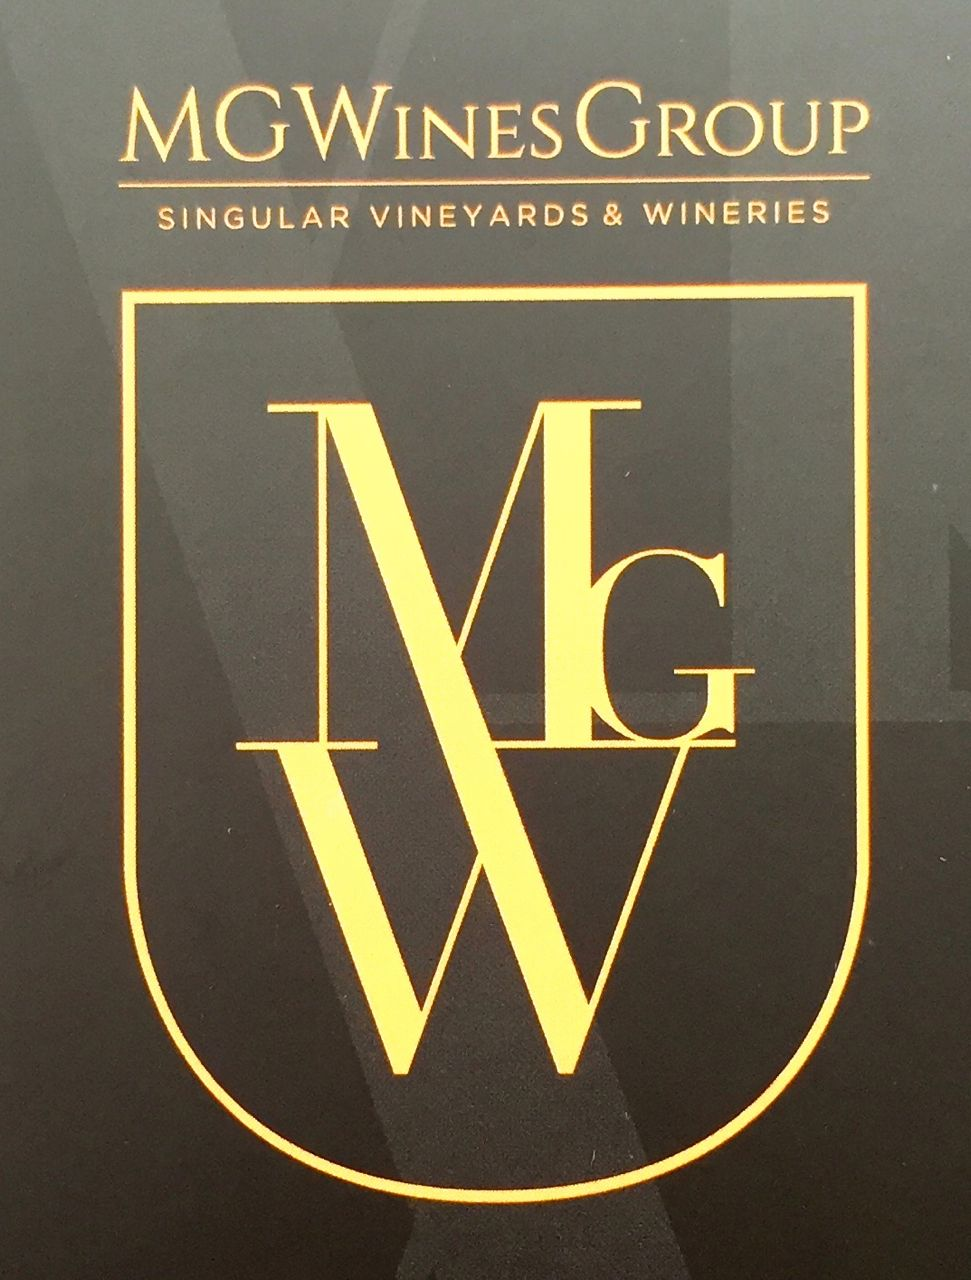 MGWines Group